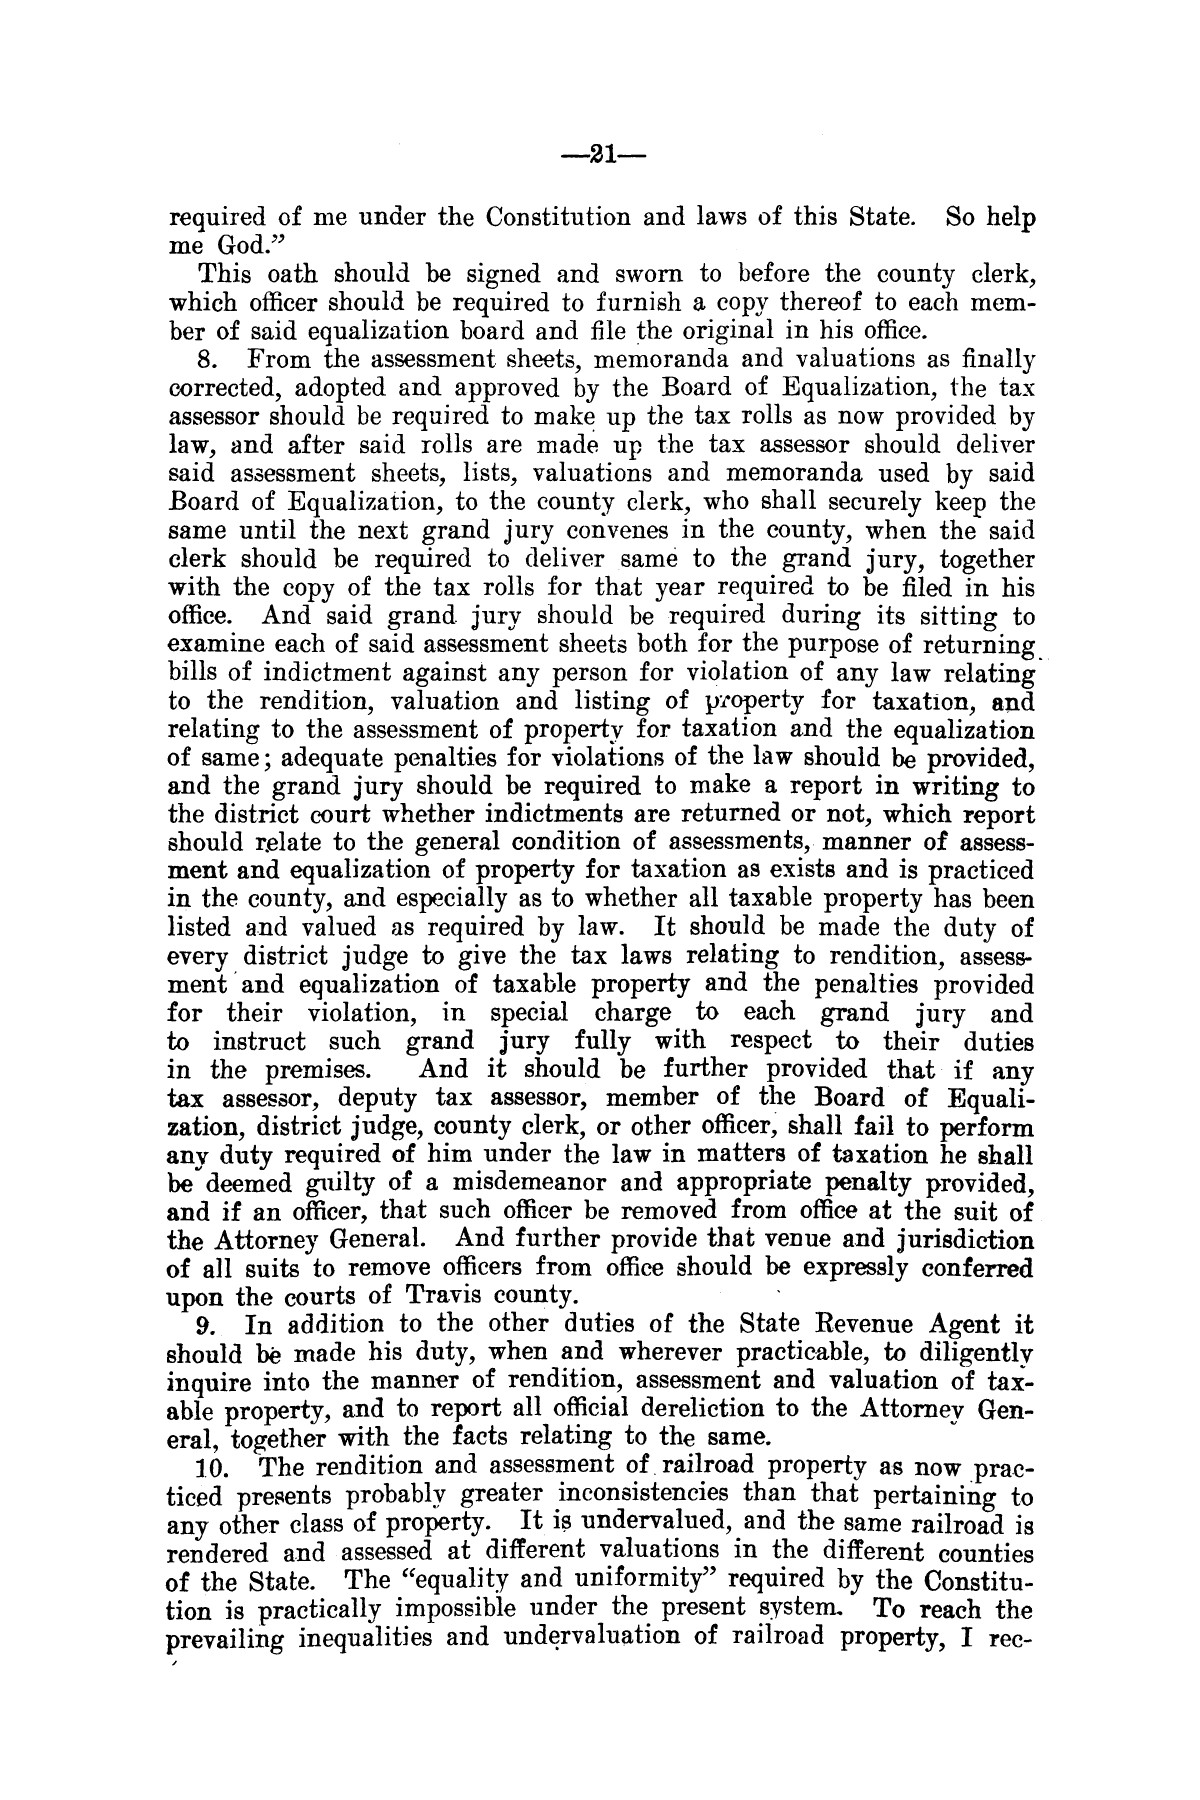 Message of Governor T.M. Campbell to the thirtieth legislature of Texas, to which is appended the State Democratic Platform adopted at Dallas, Texas, August 13, 1906.                                                                                                      [Sequence #]: 21 of 27